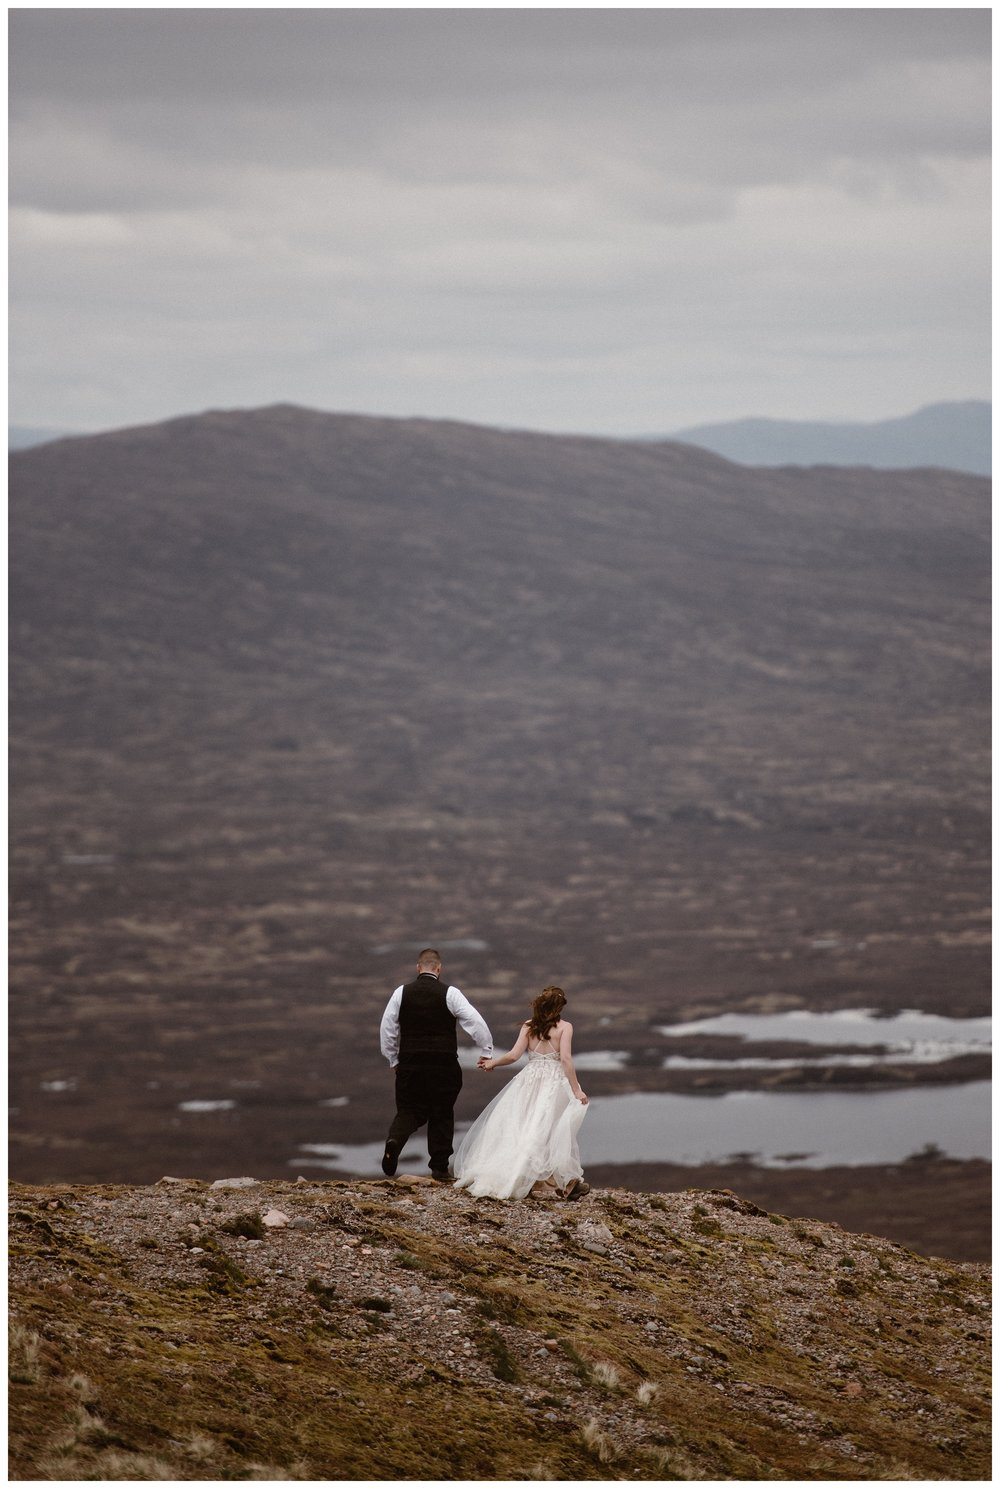 With lochs, rivers and waterfalls behind them, Elissa and Daniel hiked through Glencoe in the Scottish Highlands during their adventure destination elopement. Photo by Maddie Mae, Adventure Instead.